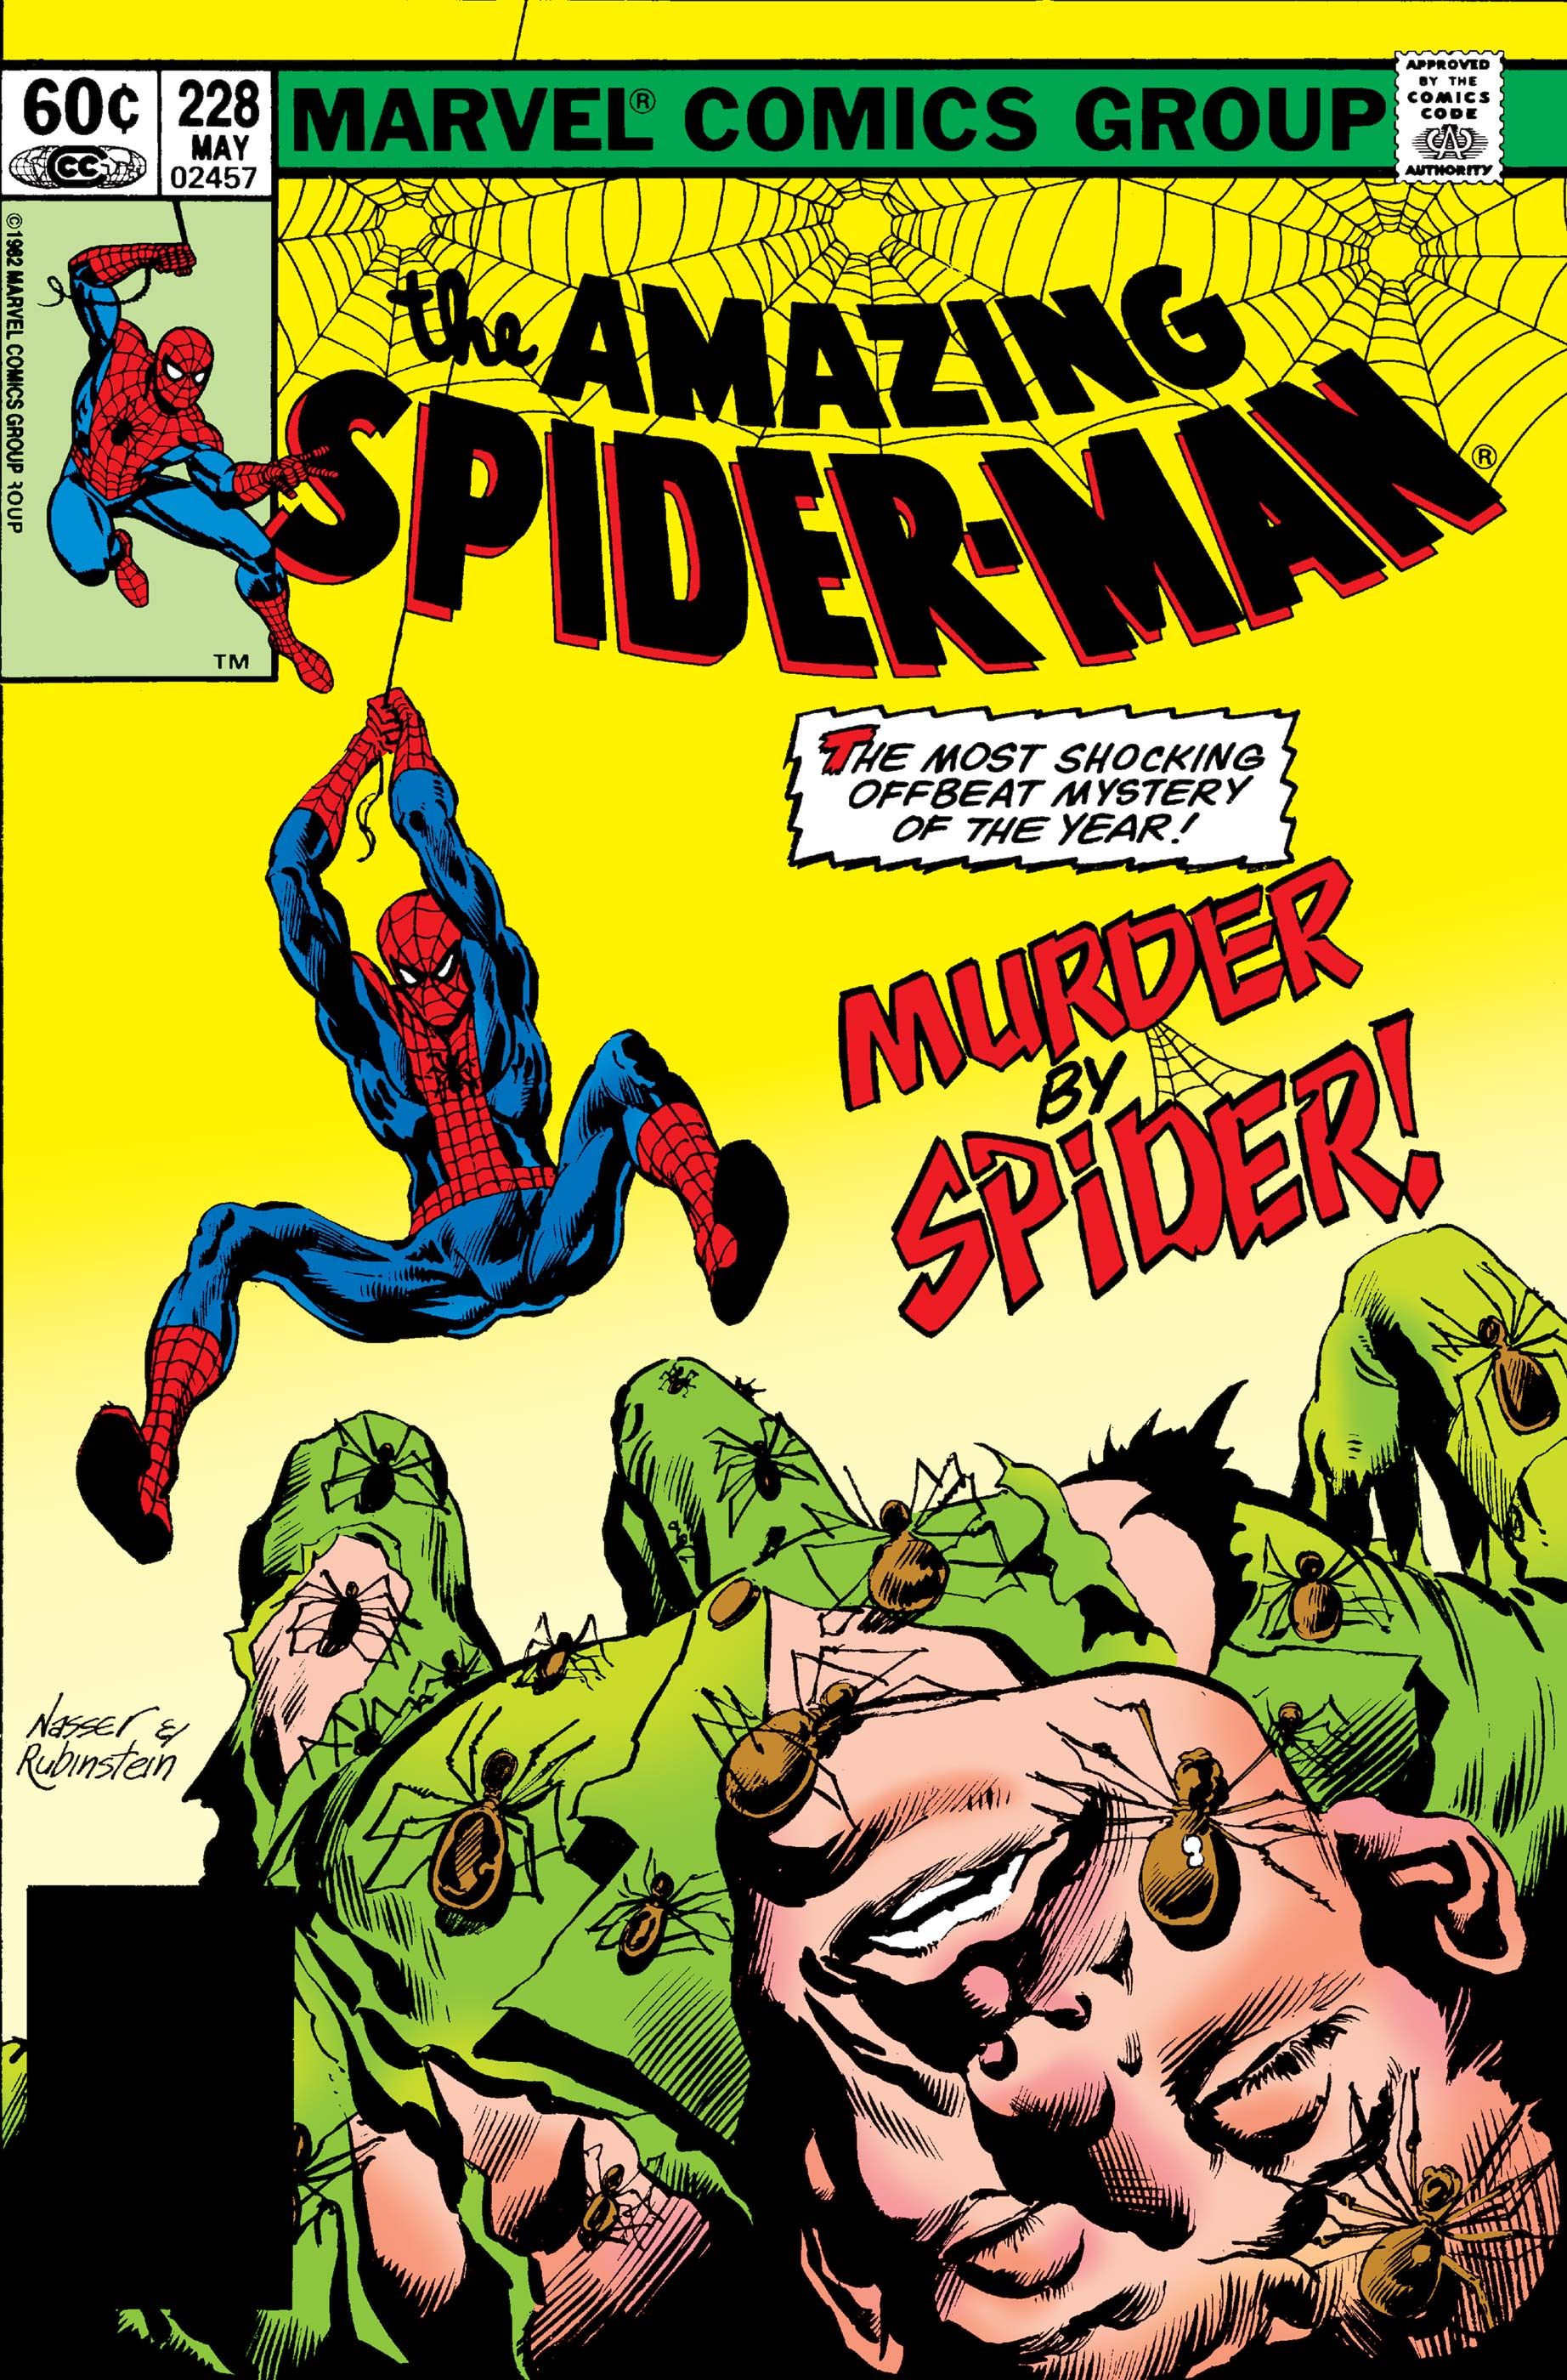 The Amazing Spider-Man (1963) #228